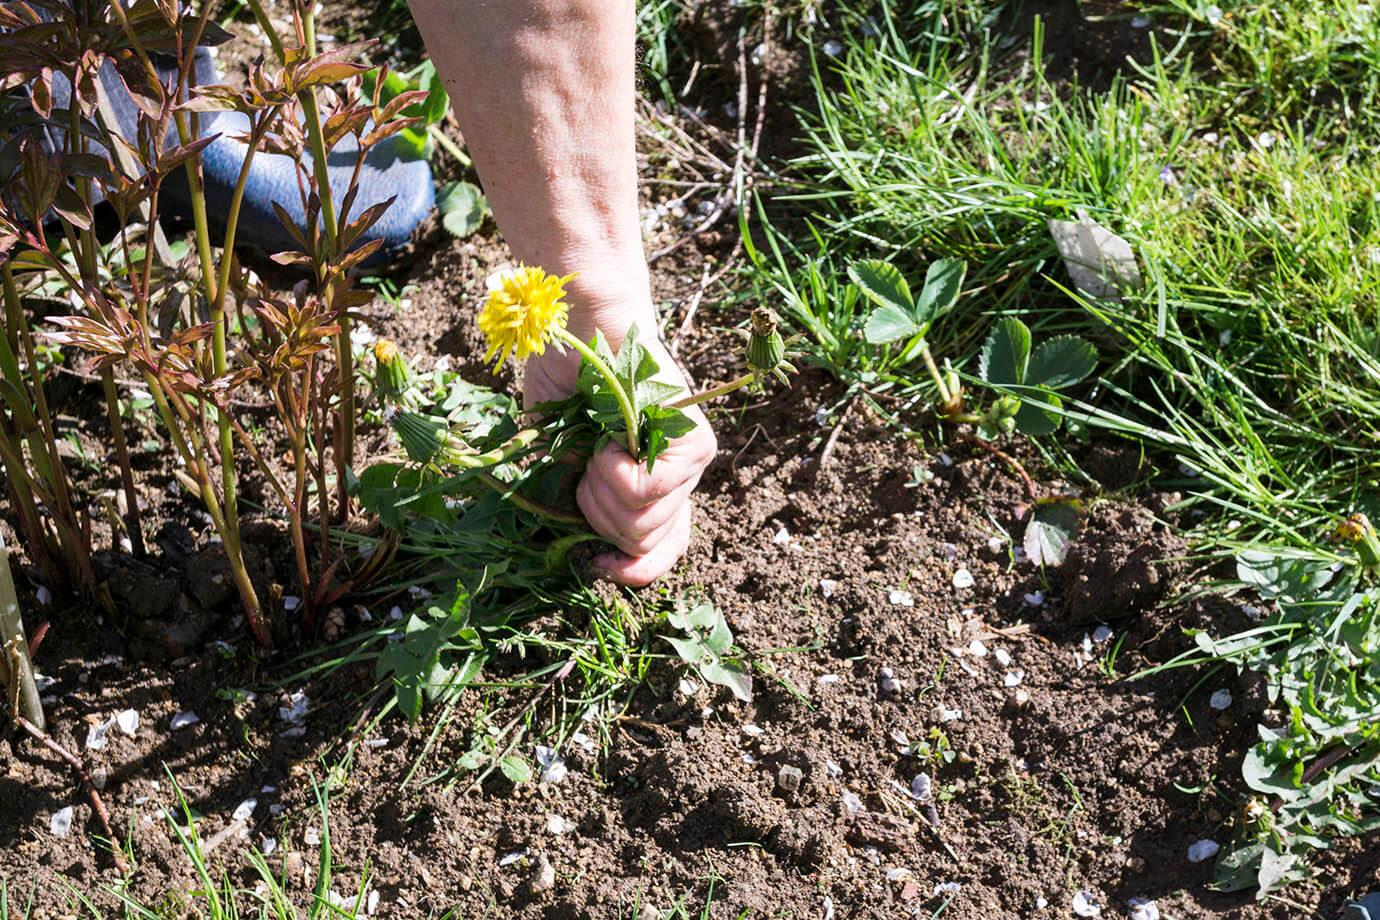 Yellow dandelion being pulled out of the ground by hand